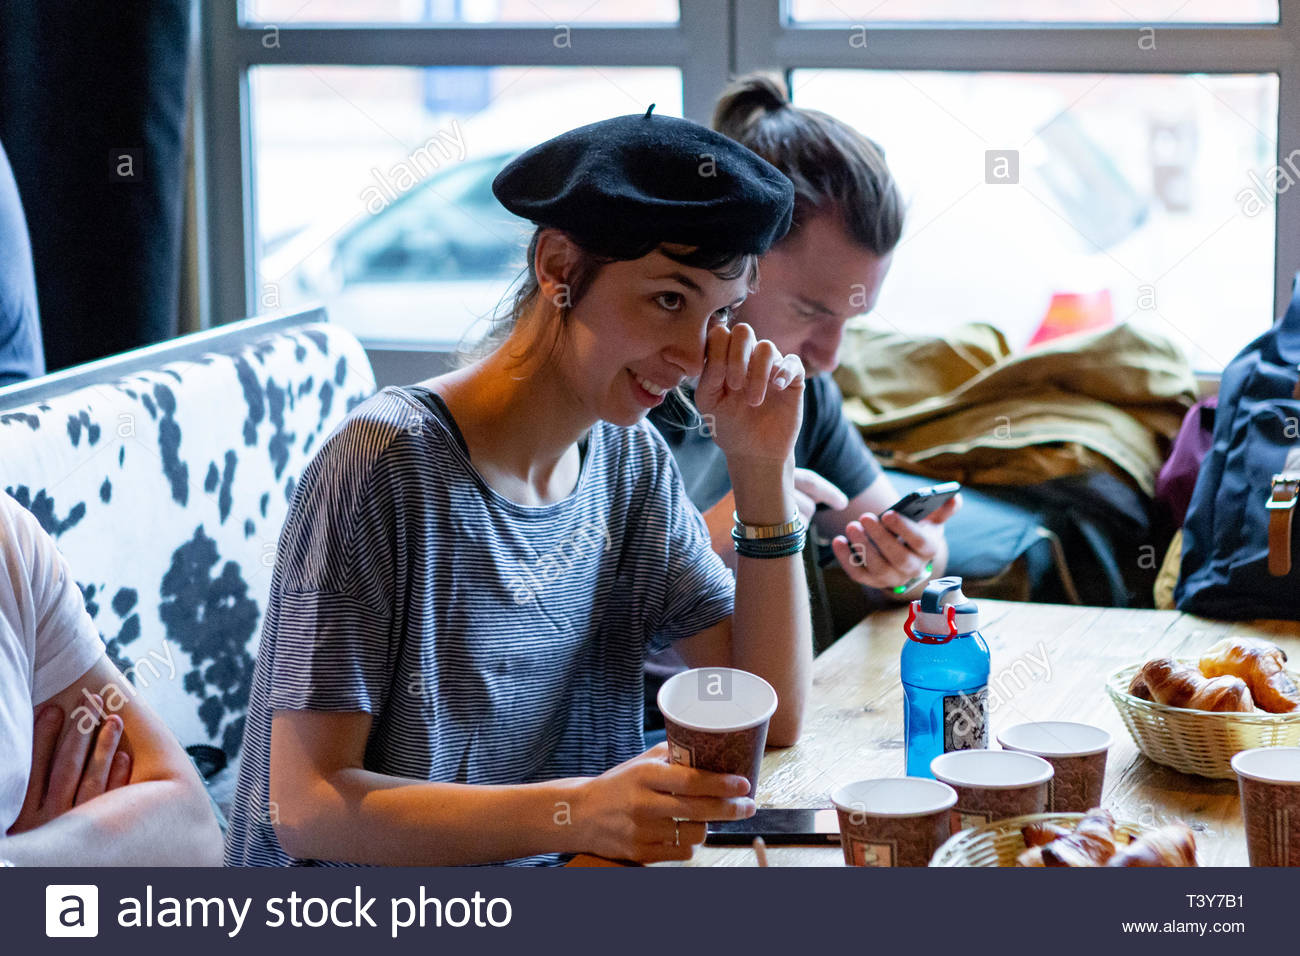 365af0adf4a French Beret Stock Photos   French Beret Stock Images - Alamy